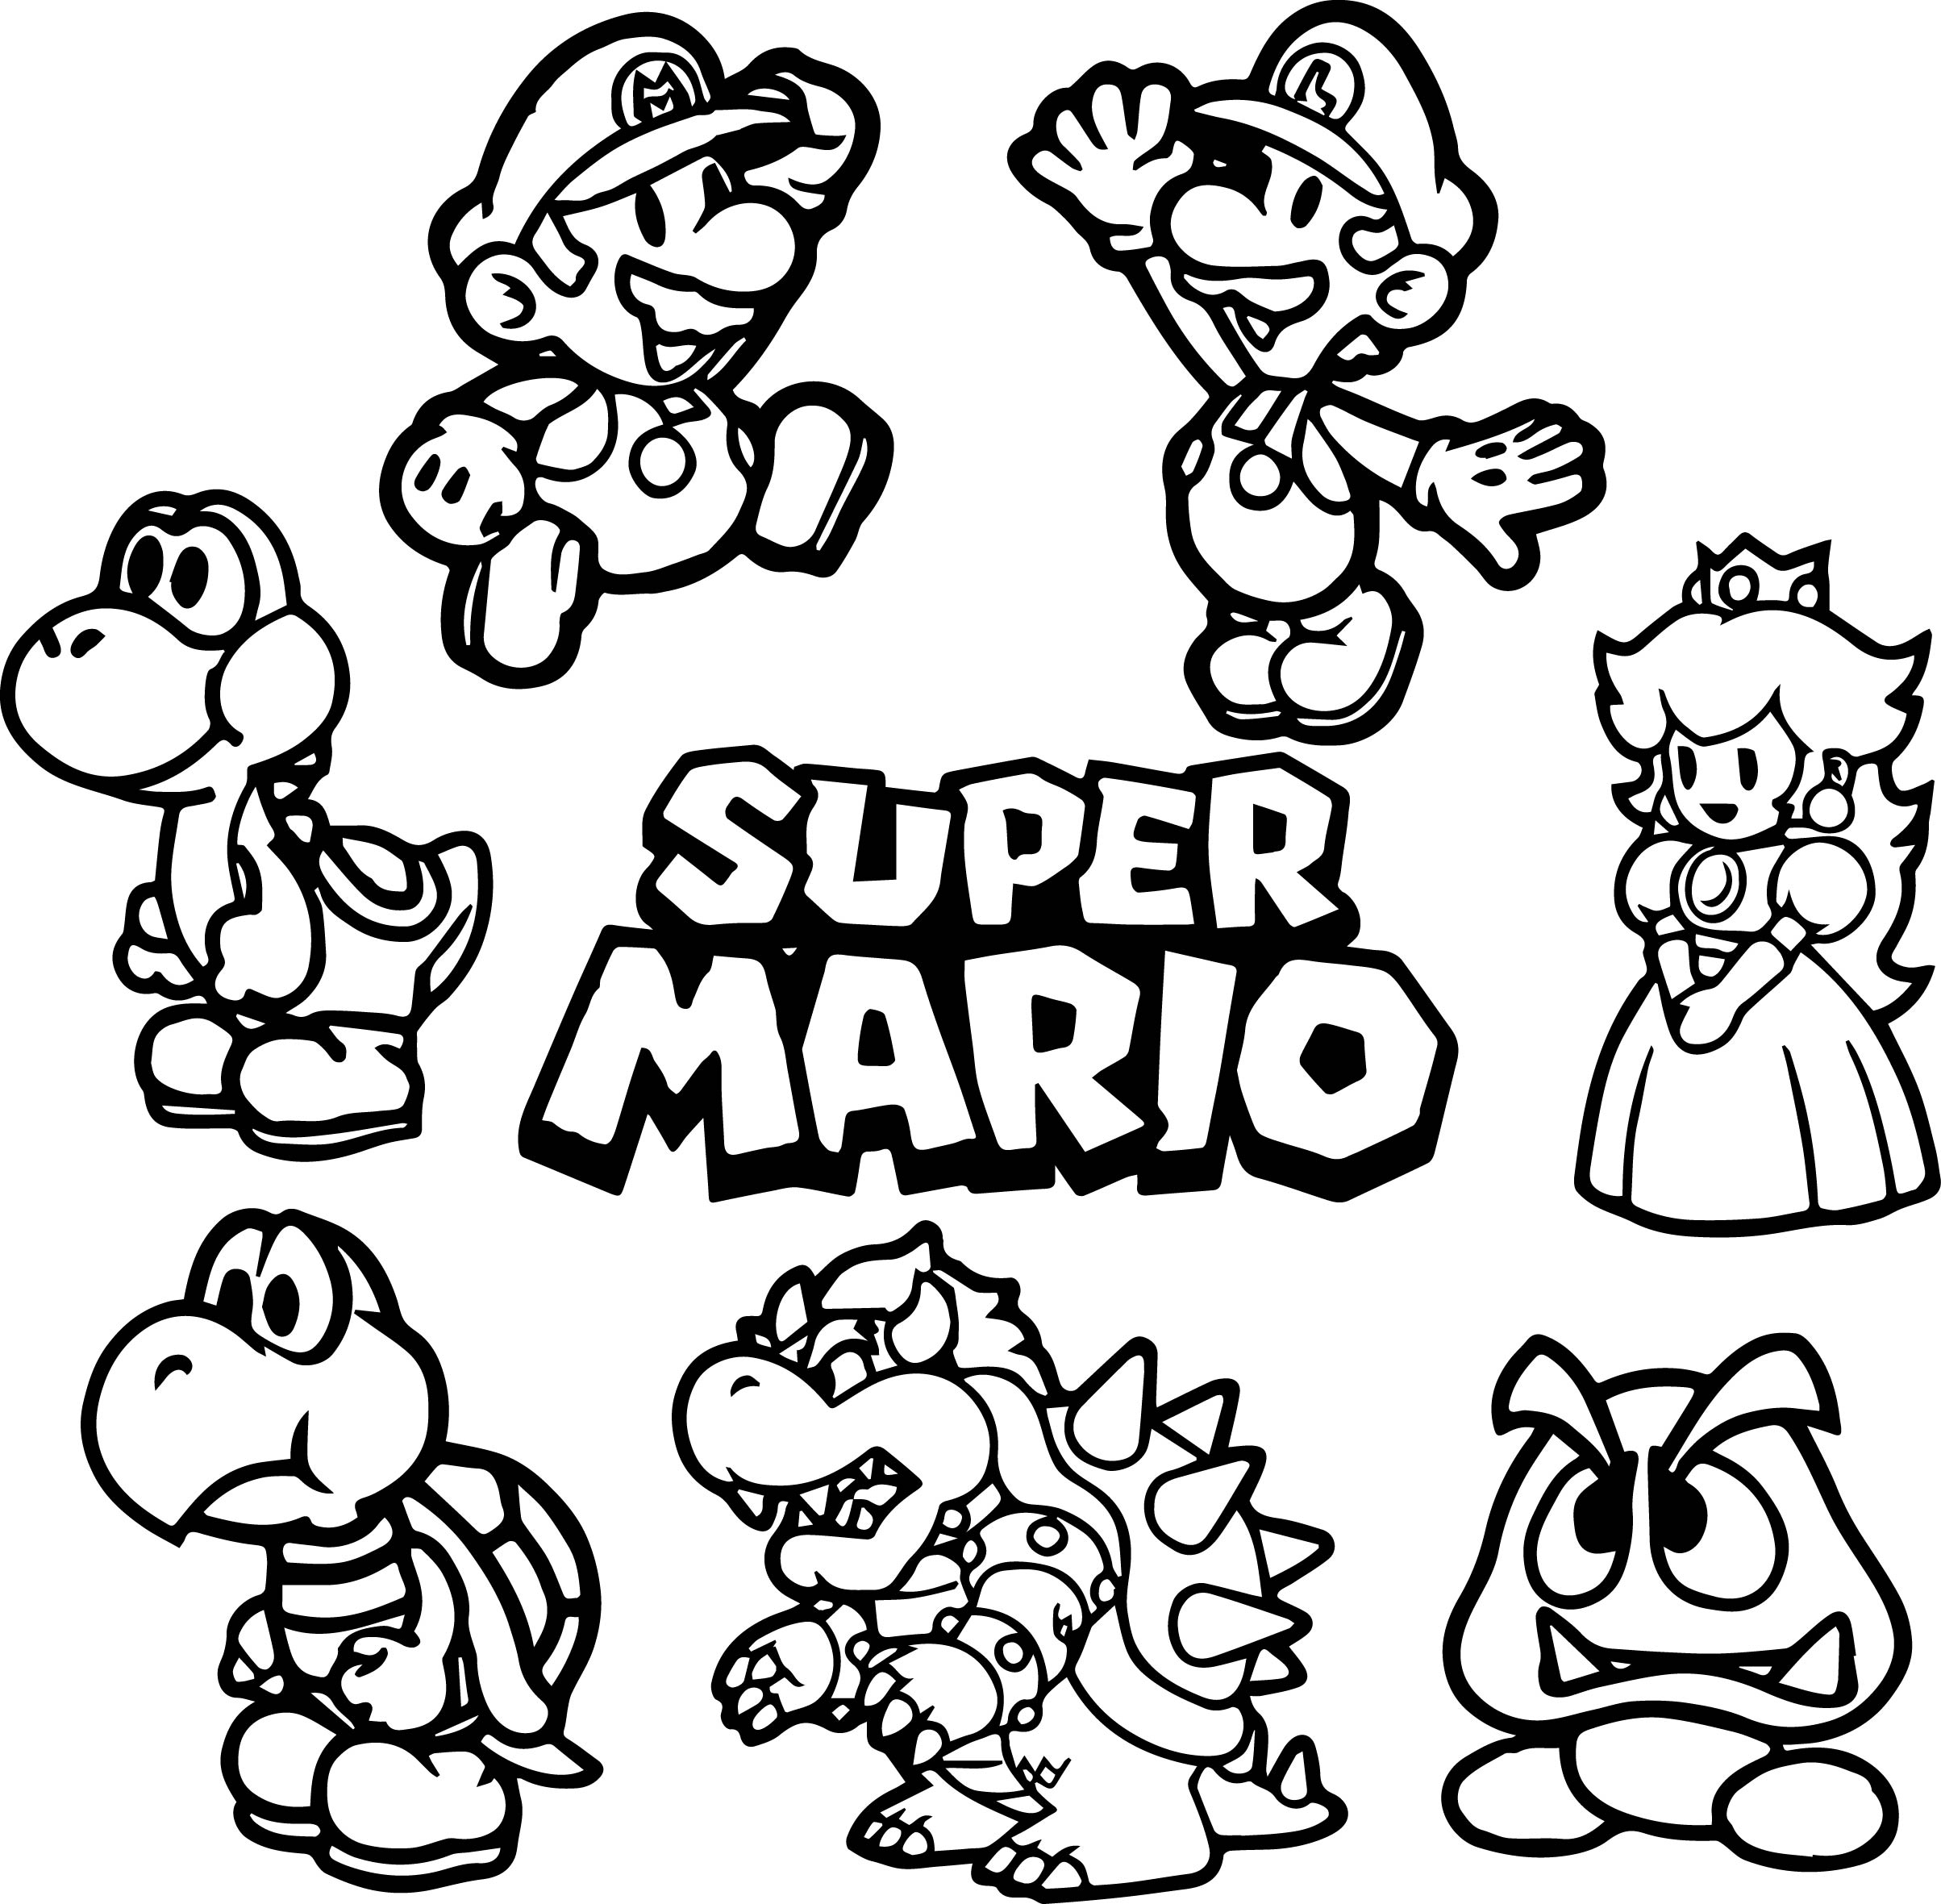 mario bro yoshi coloring pages - photo#37